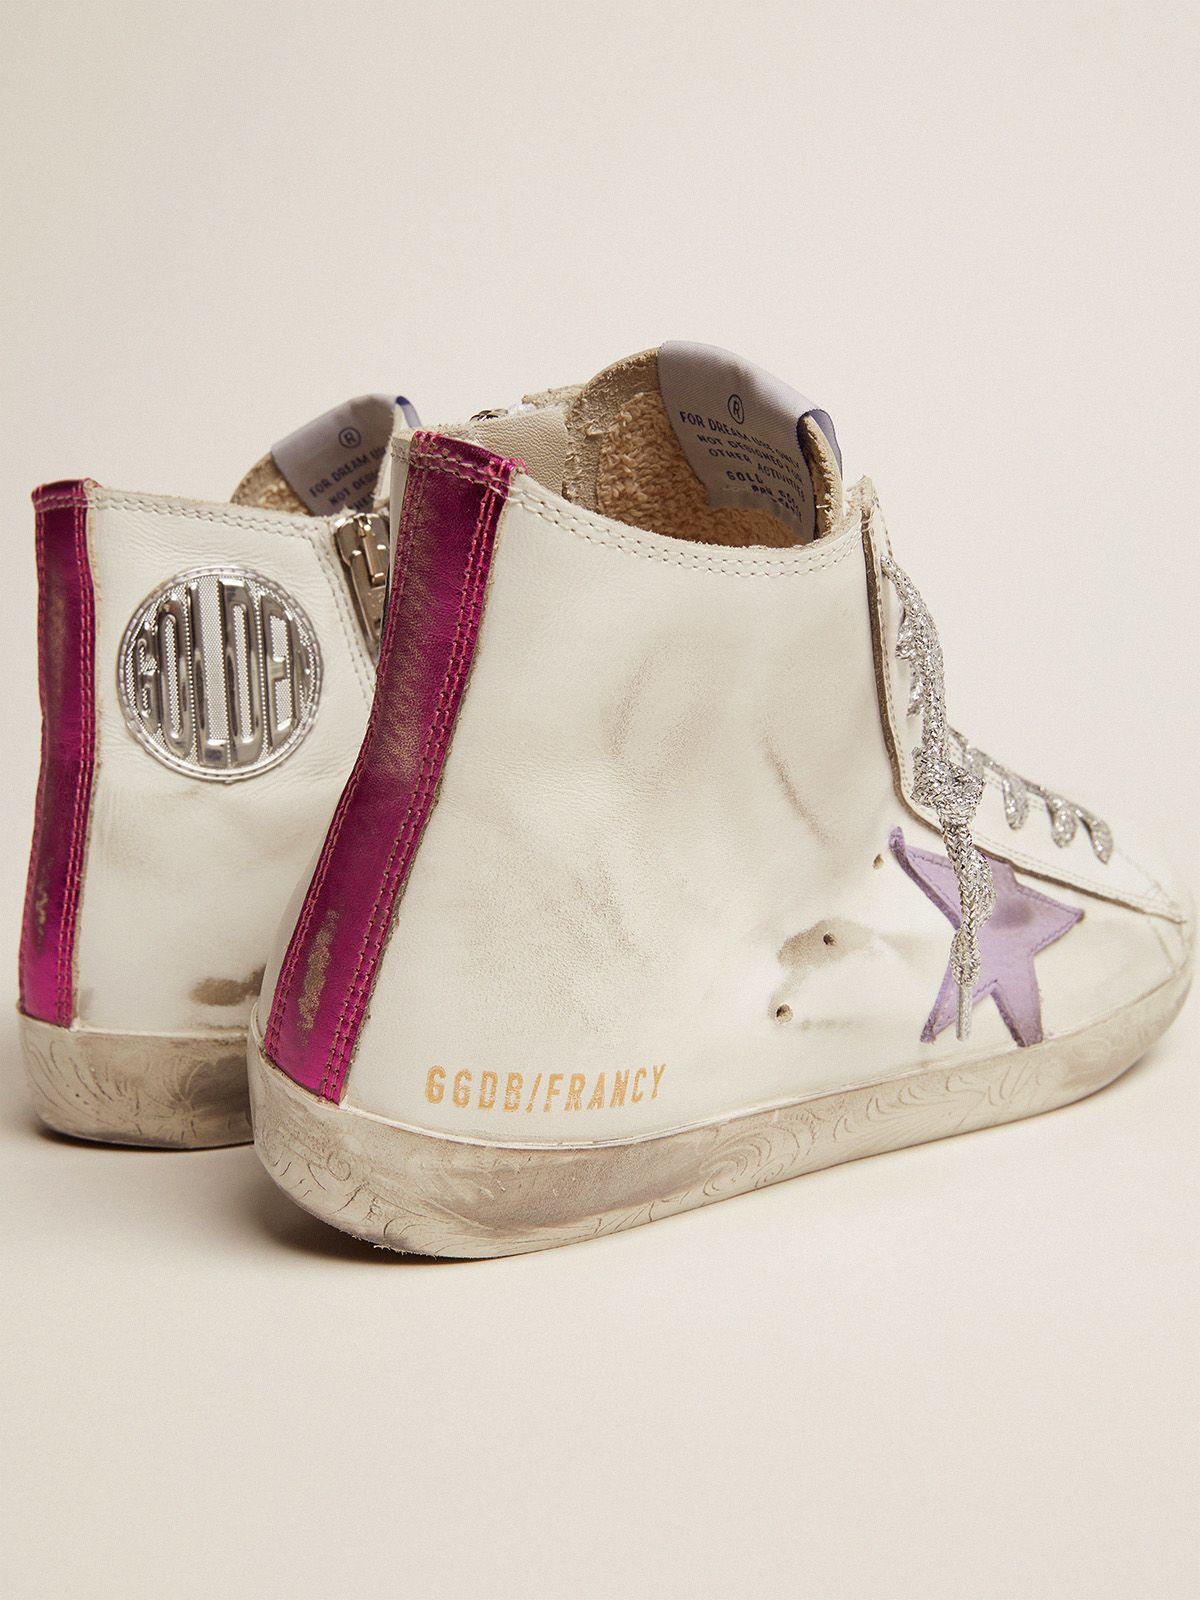 Francy sneakers with foxing with floral decorations and lavender-colored star 3